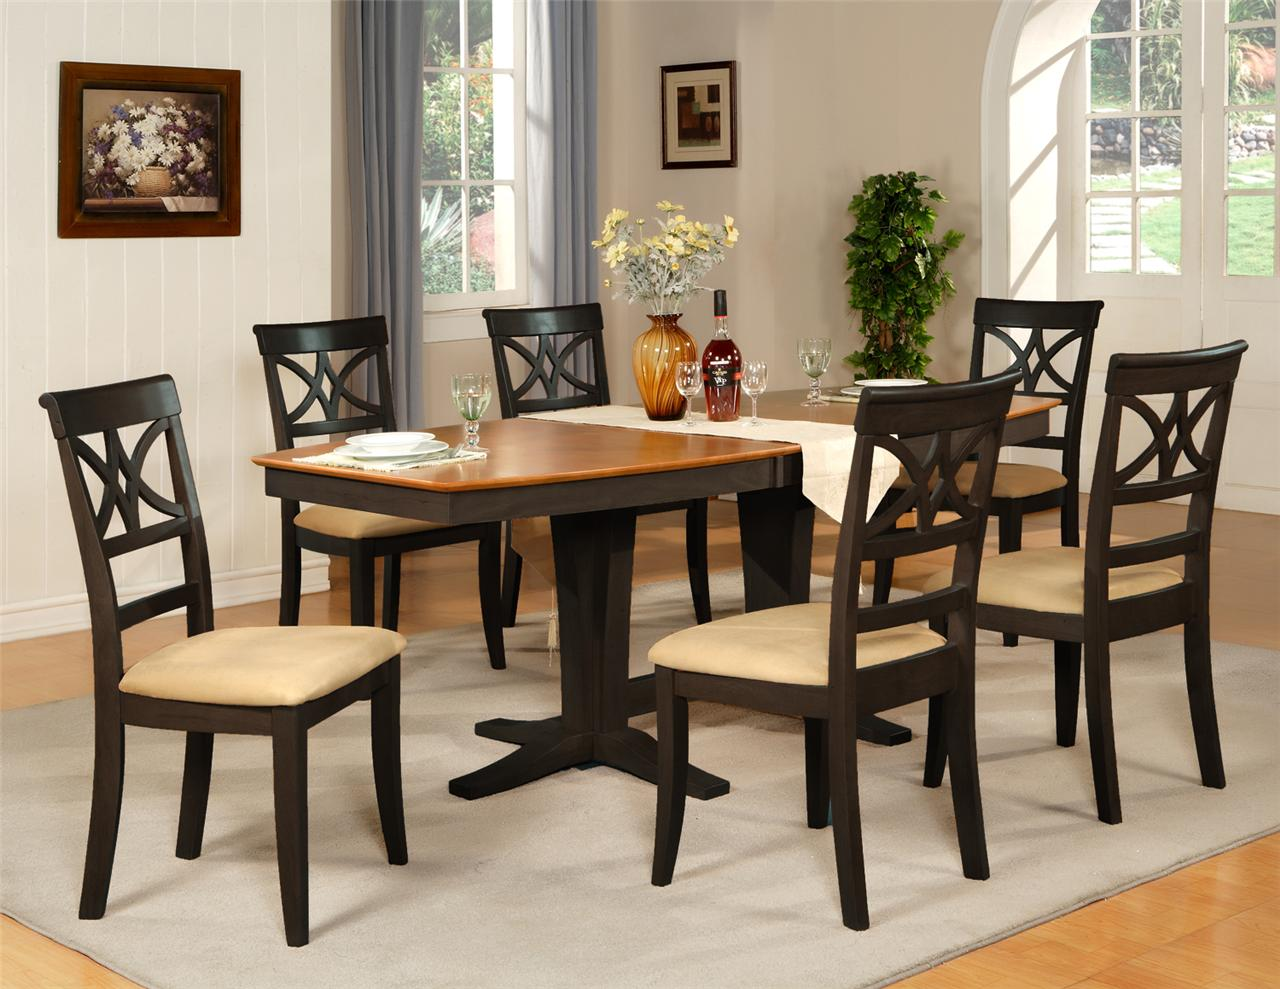 dining room table sofa multi use set with chairs 2017 grasscloth wallpaper